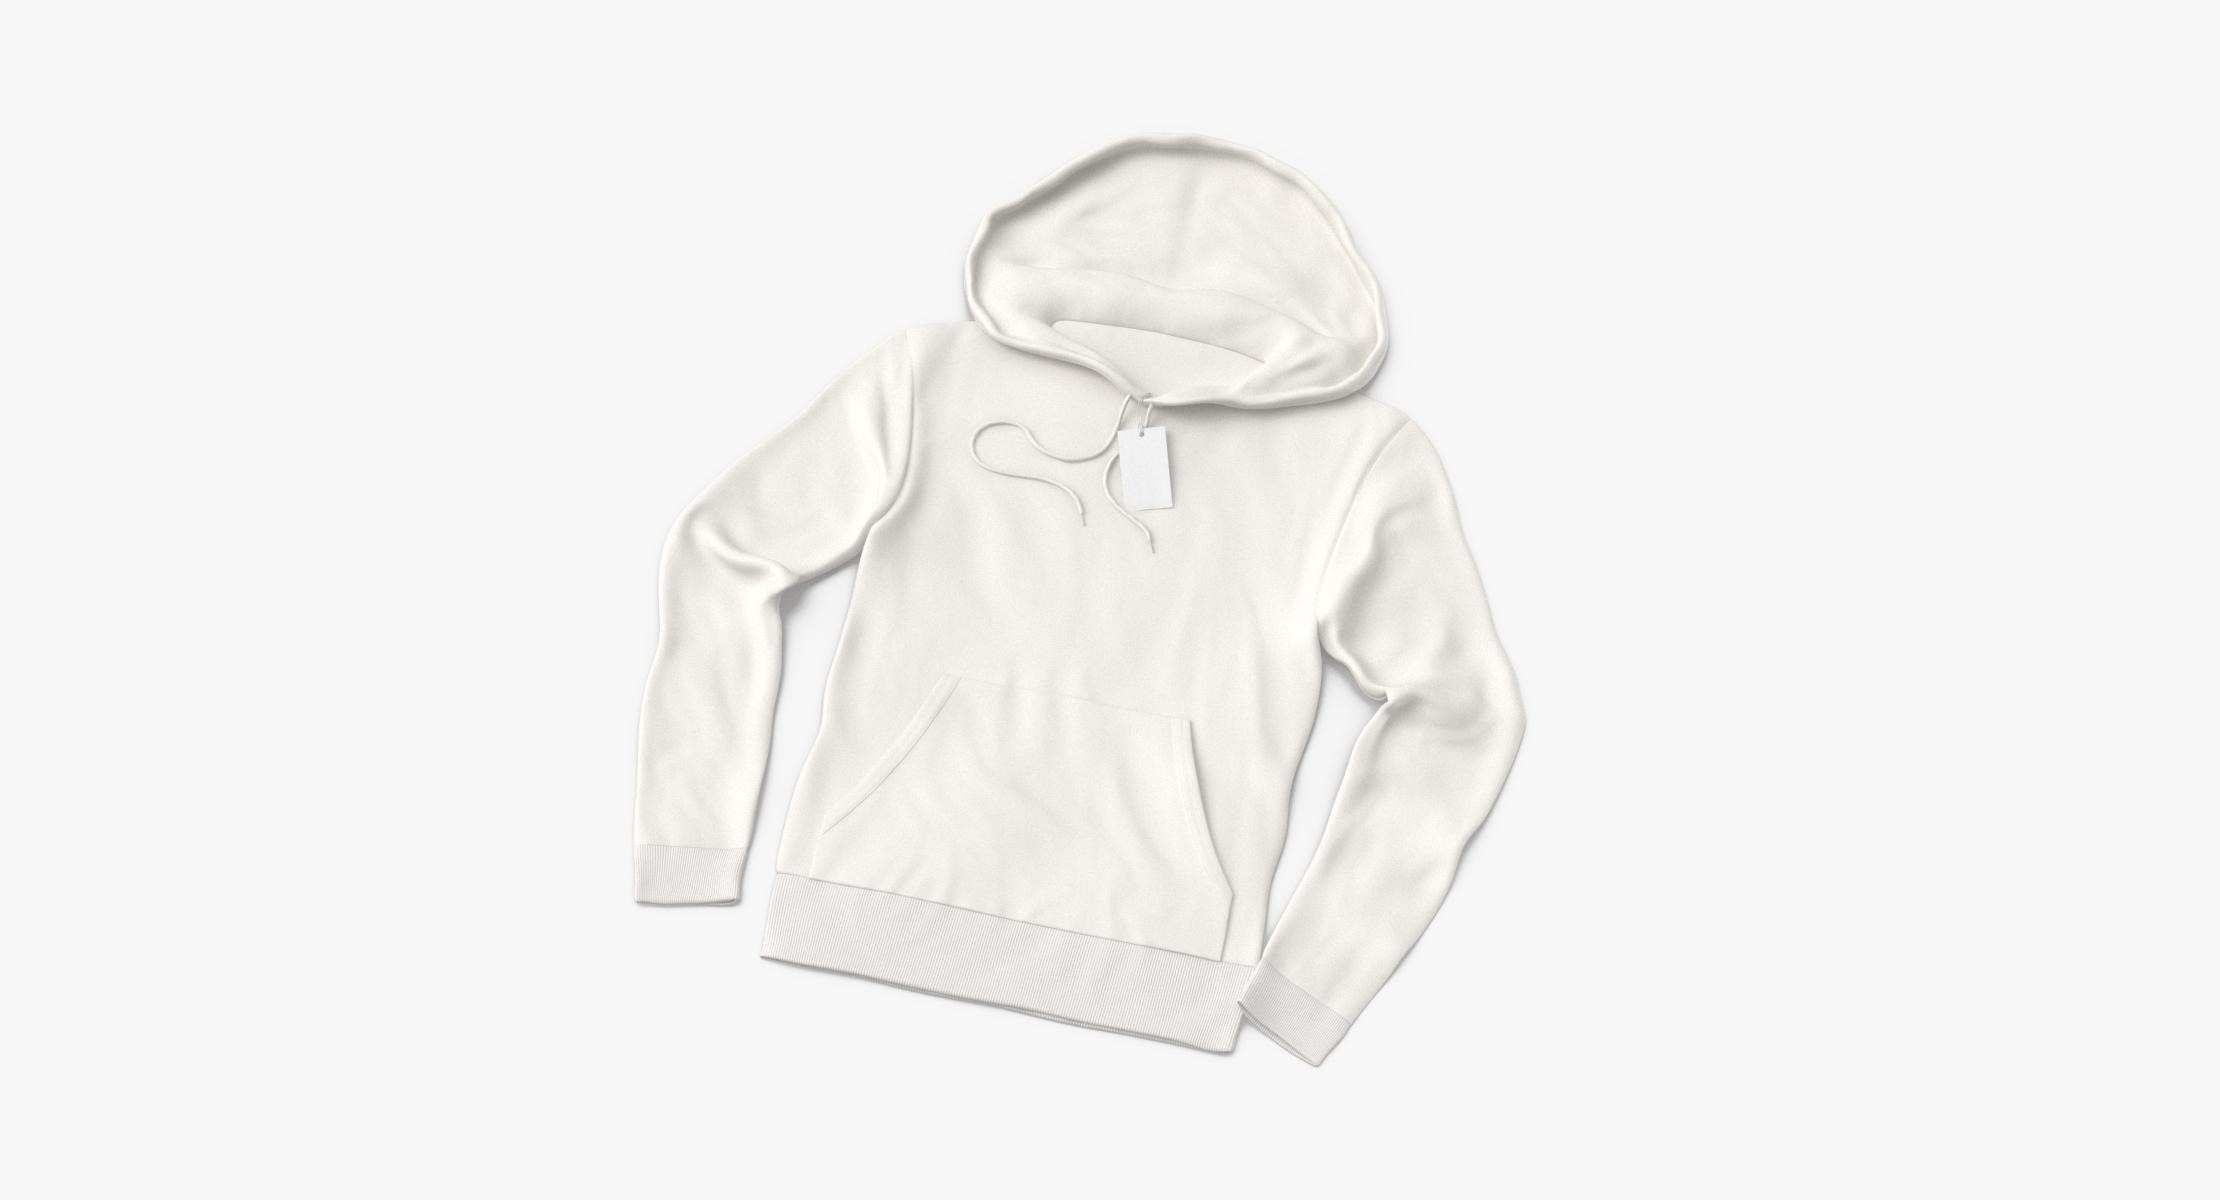 Male Standard Hoodie Laid out Loosely With Tag - reel 1